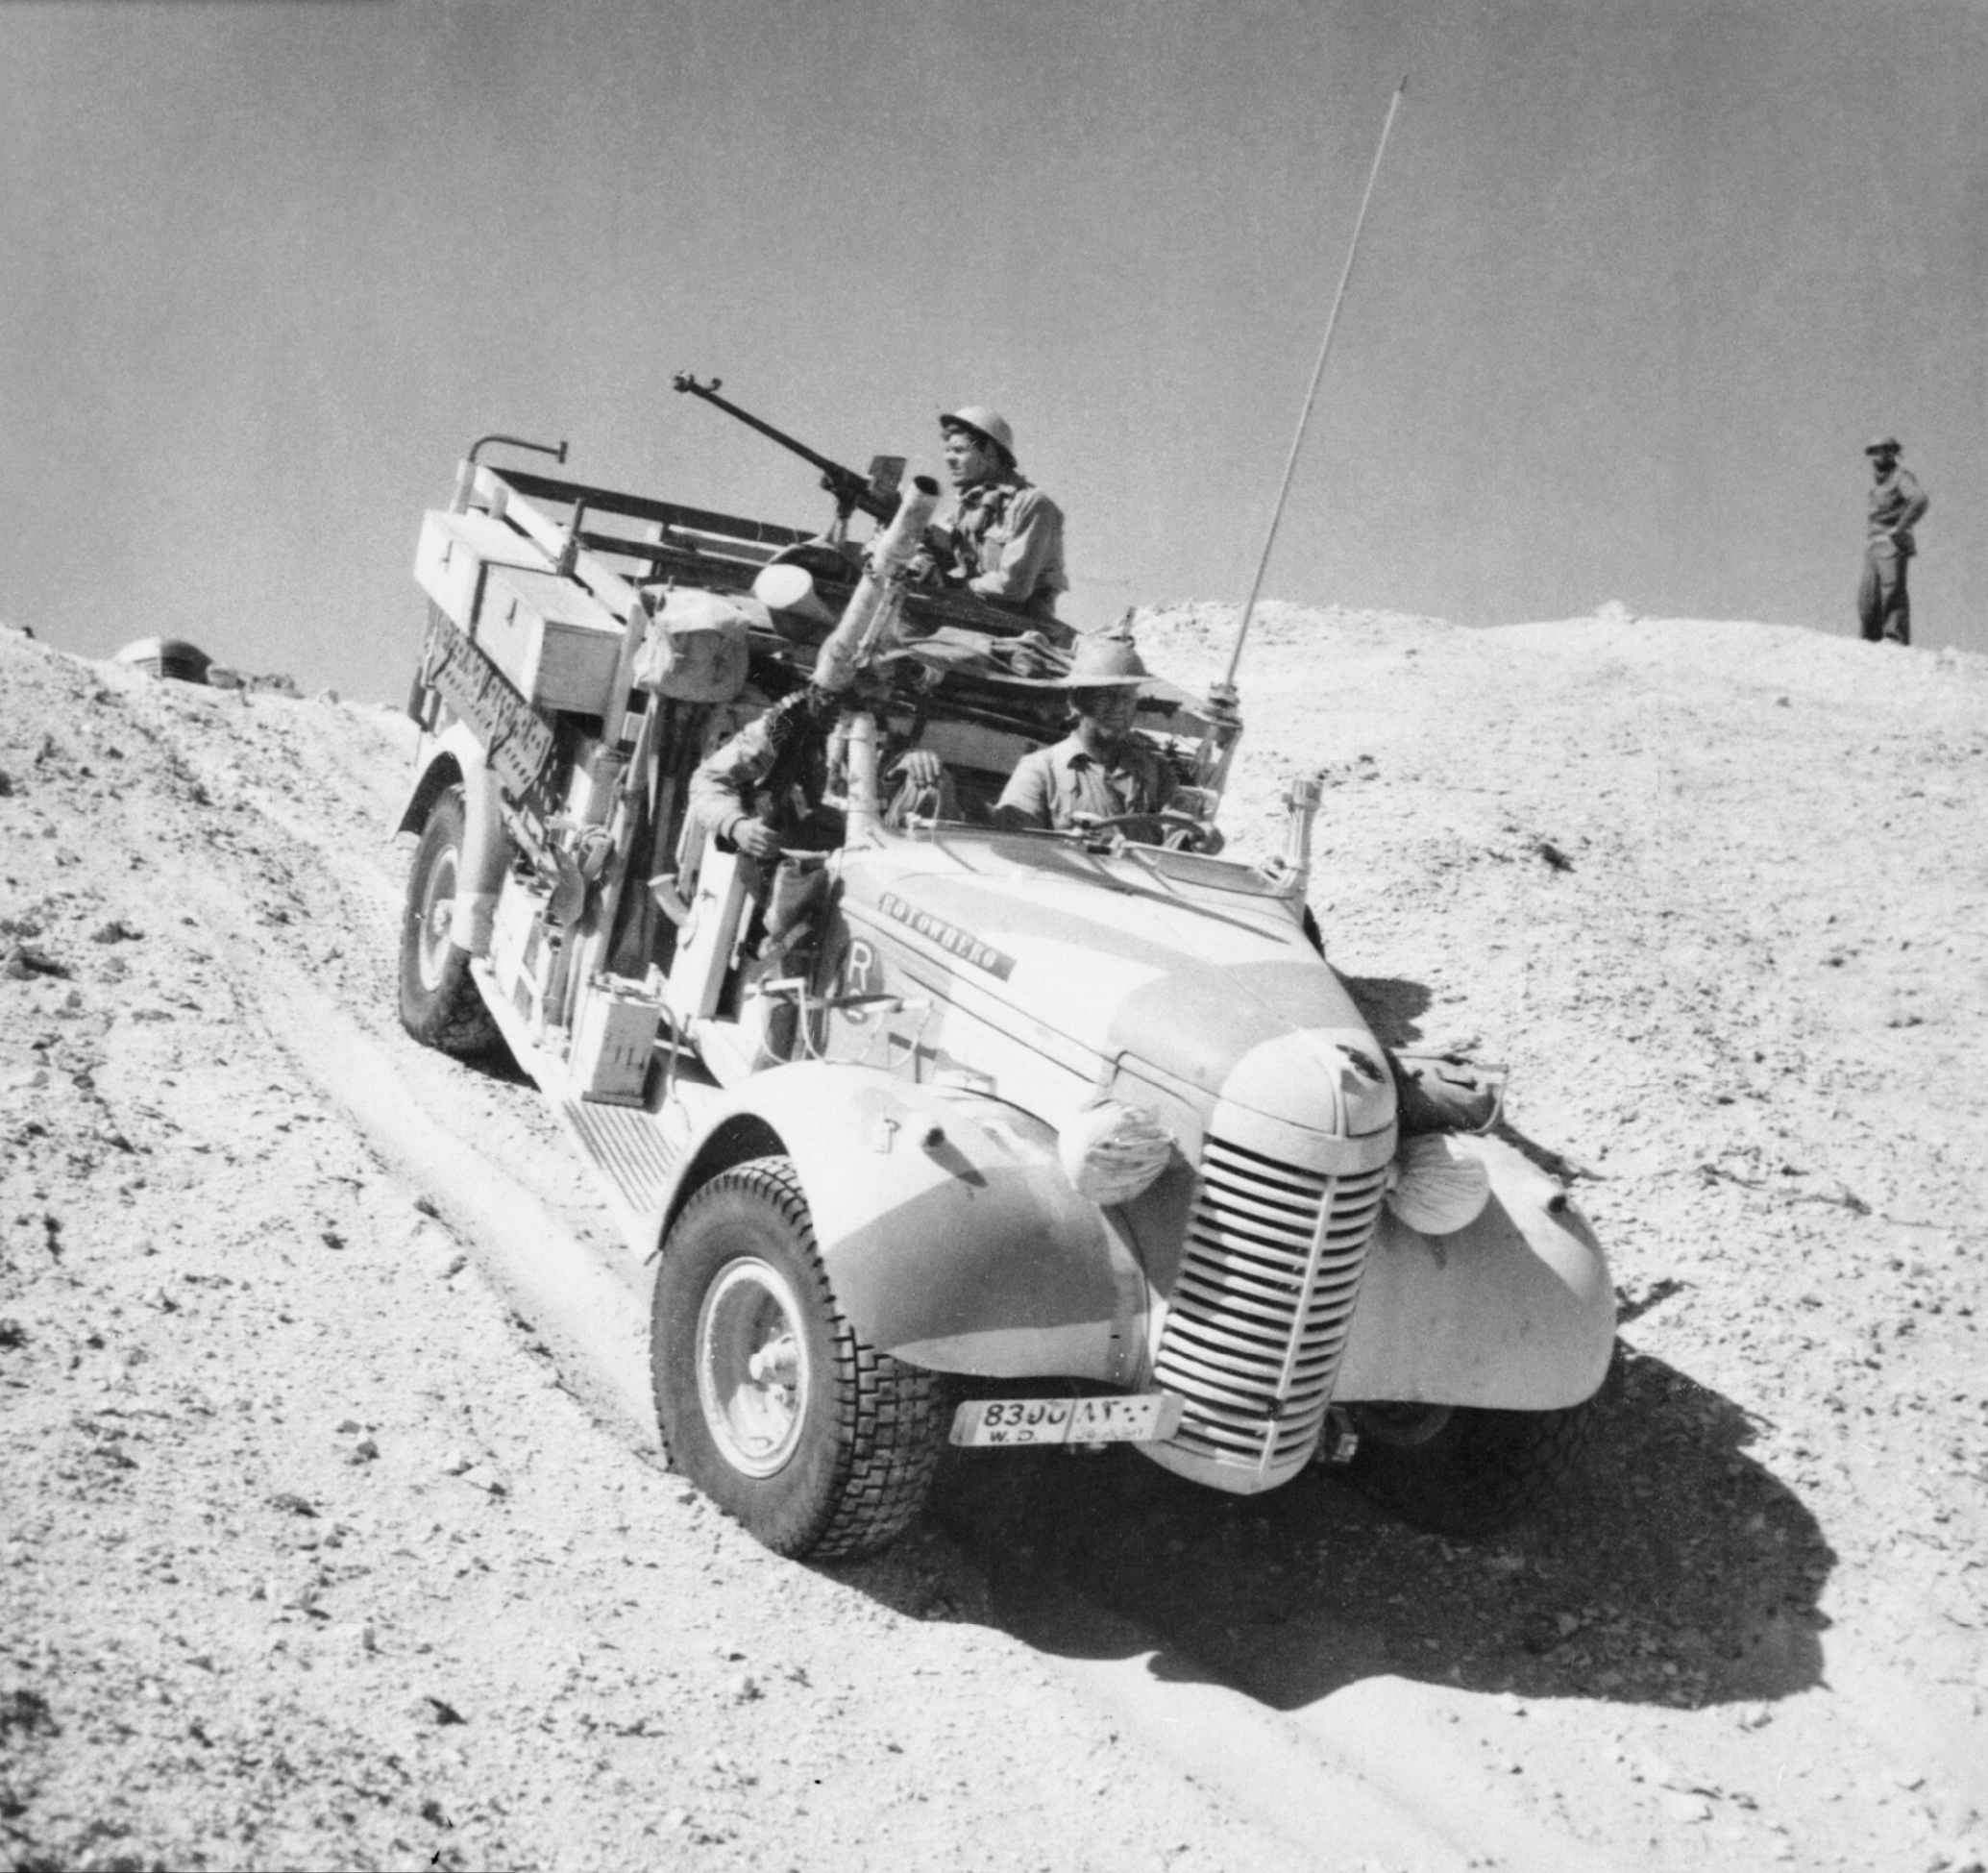 Fiat-Ansaldo AS42 A_Long_Range_Desert_Group_Chevrolet_30cwt_1533_truck_negotiates_the_slope_of_a_sand_dune_during_a_patrol_in_the_desert_27_March_1941._E2298